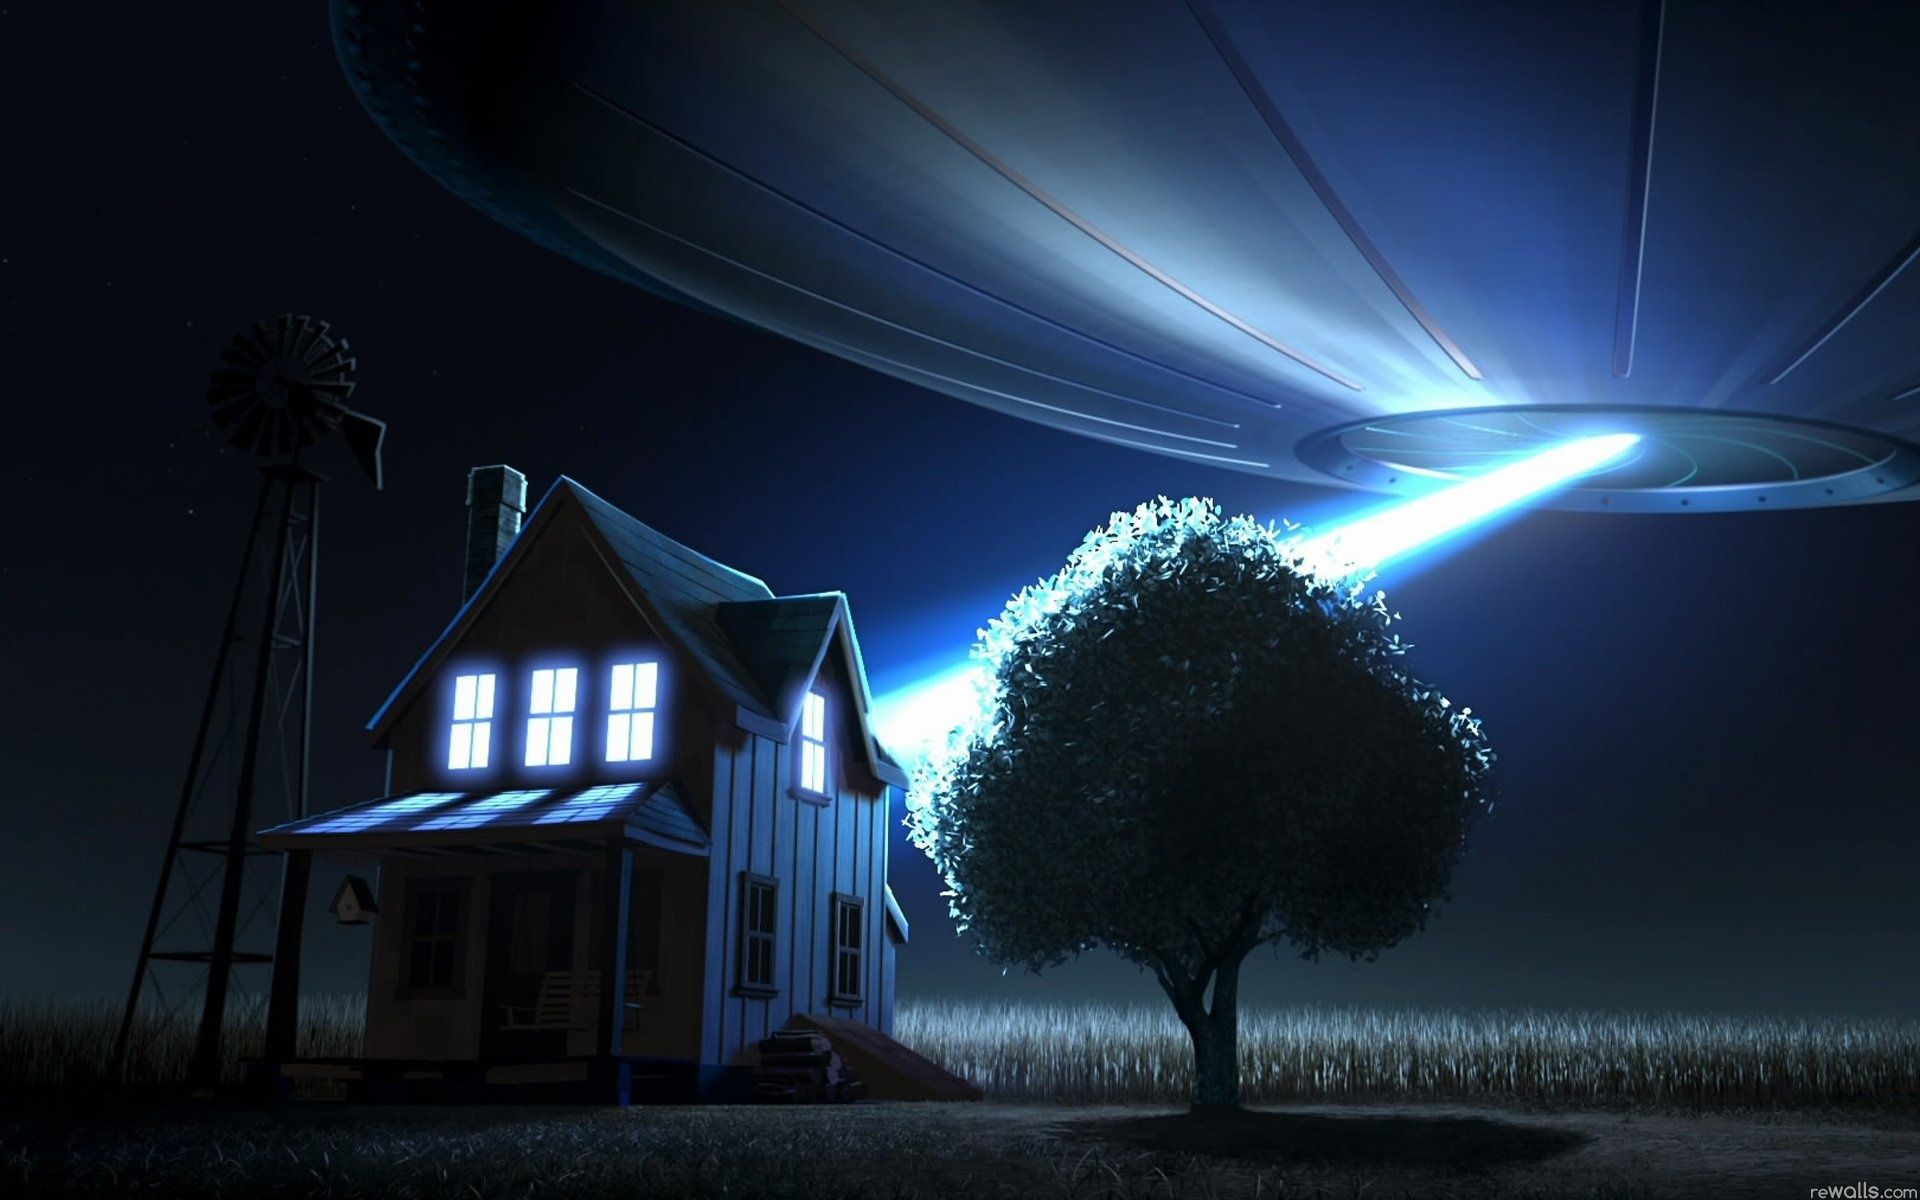 A house in a field is shown at night with a UFO behind it, beaming light into the house's windows.